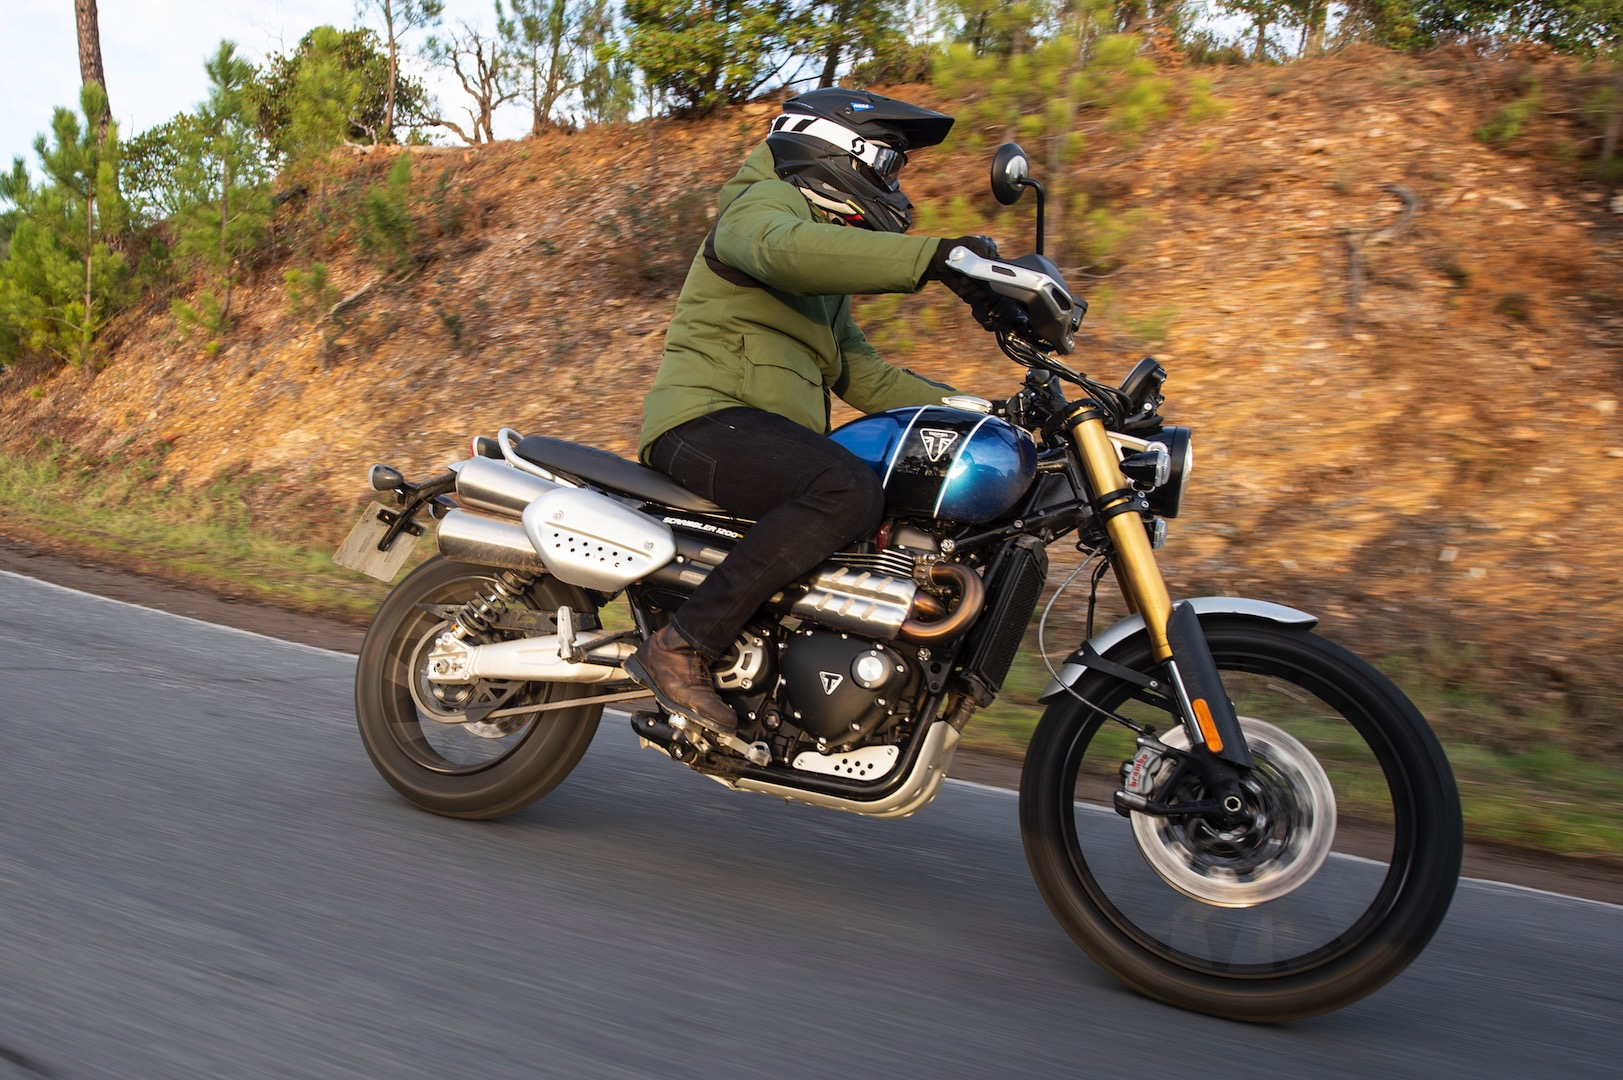 2019 Triumph Scrambler 1200 XE for sale